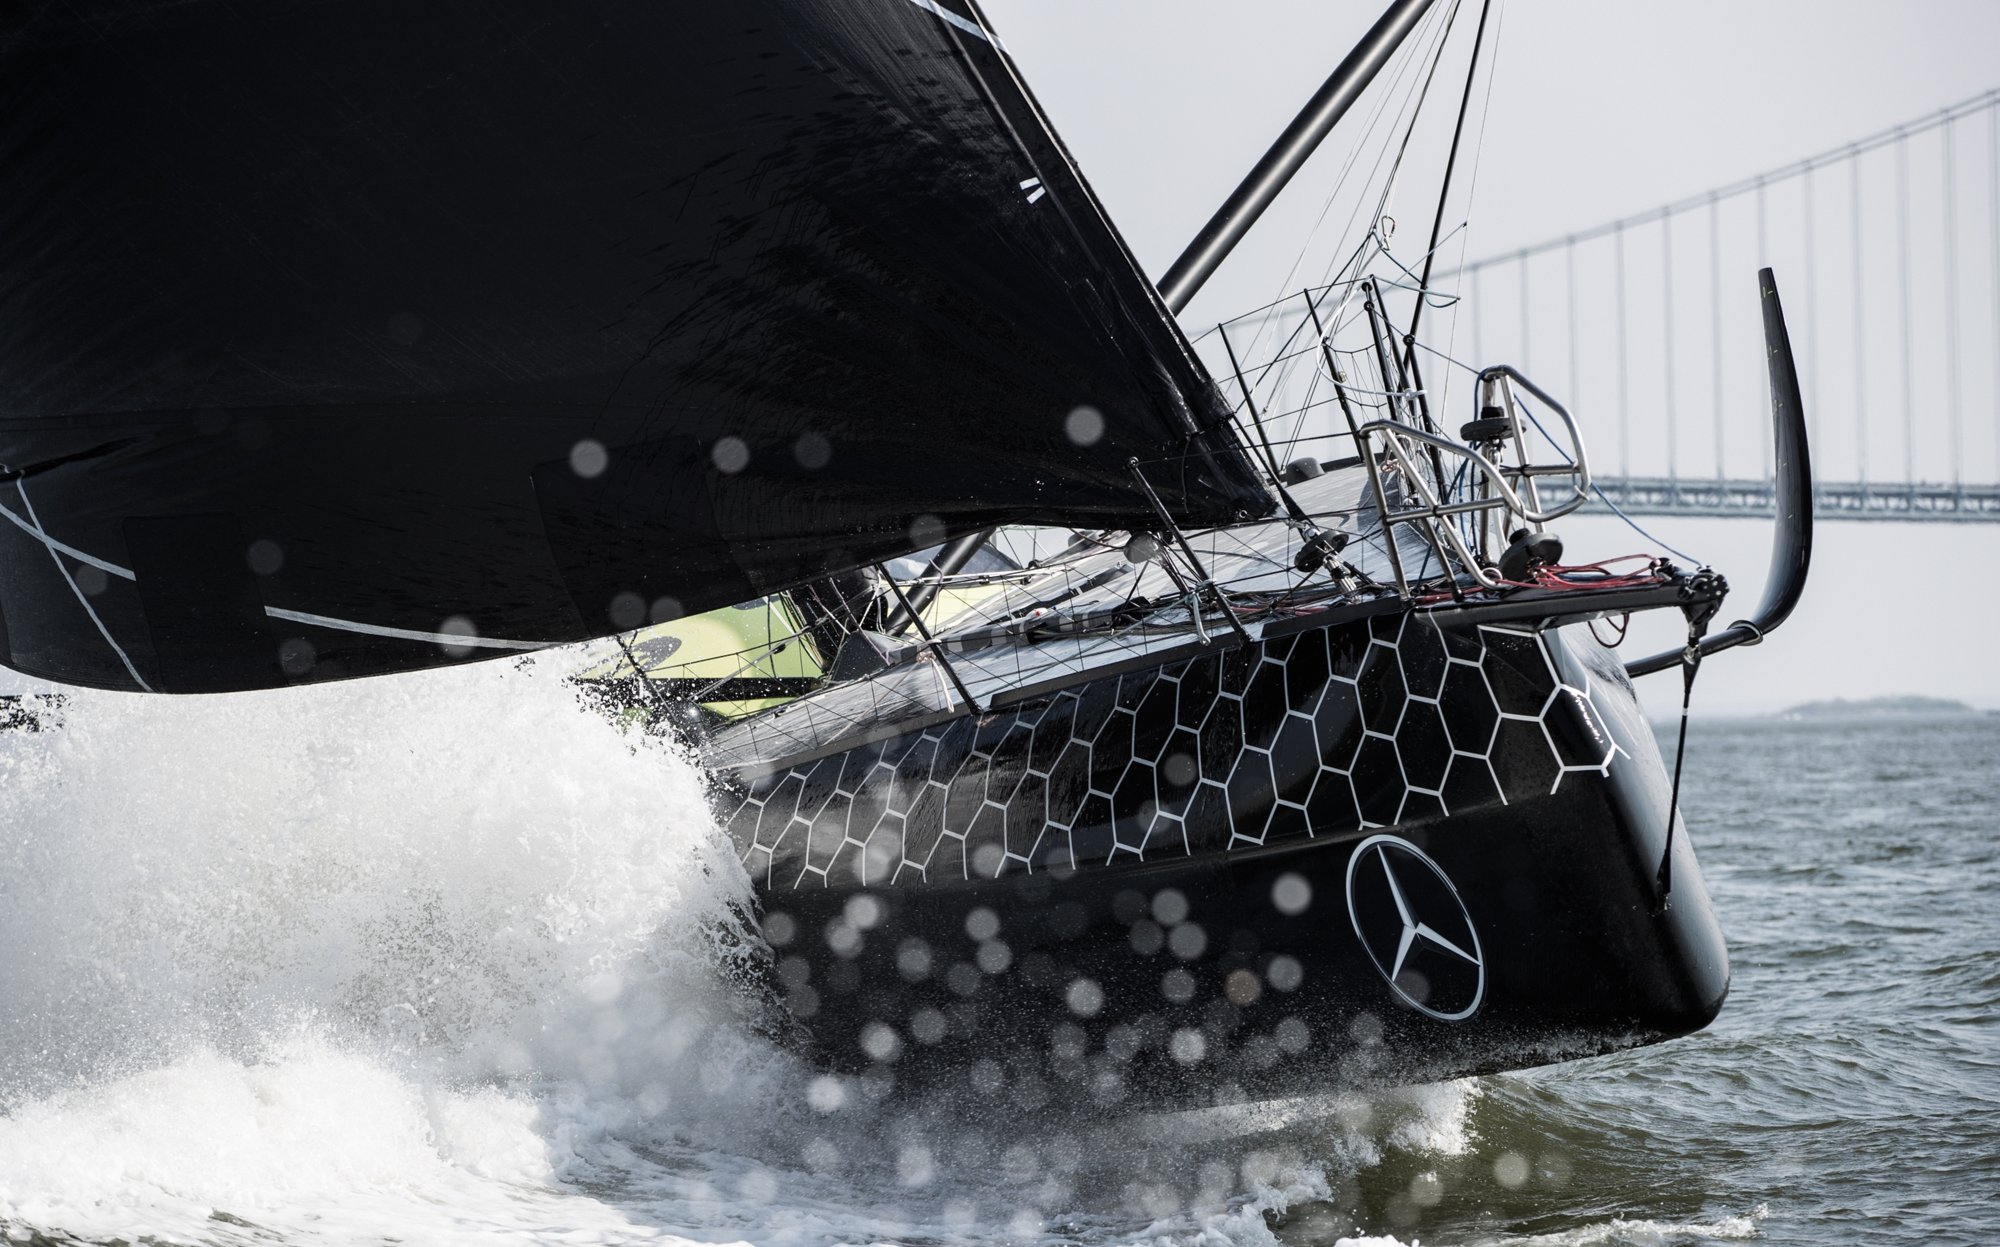 The HUGO BOSS yacht